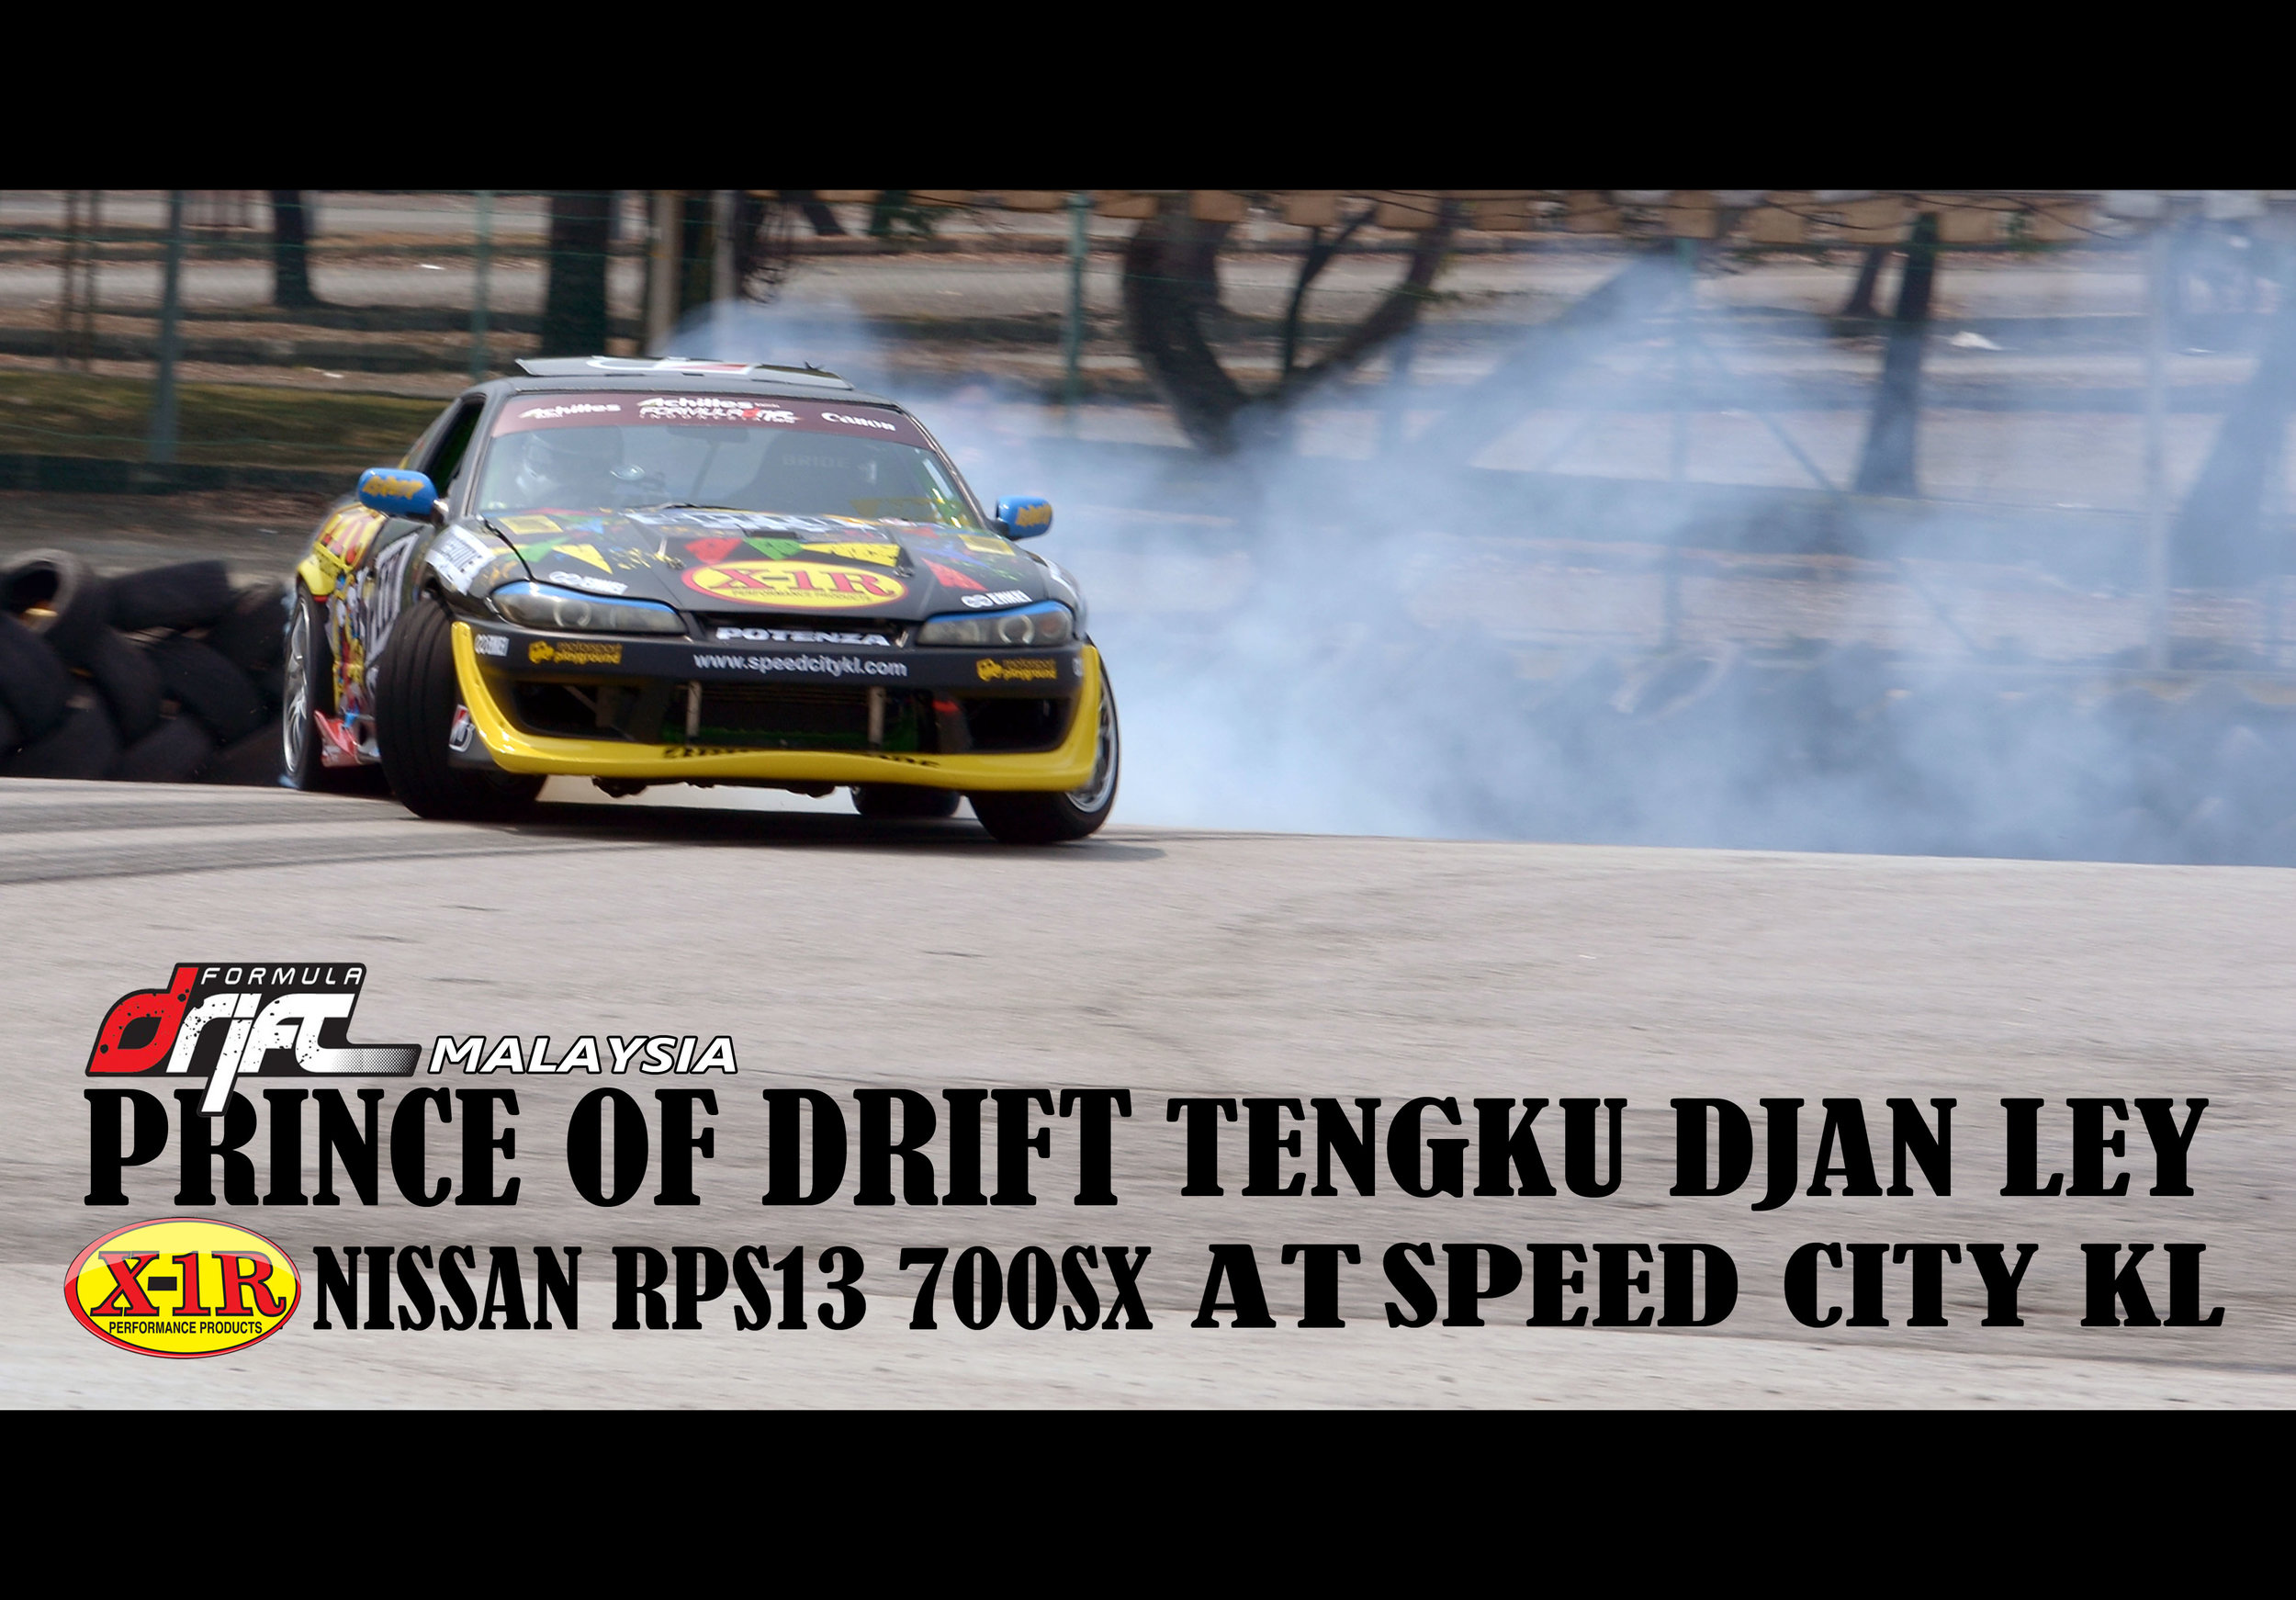 Proven in Drift Cars